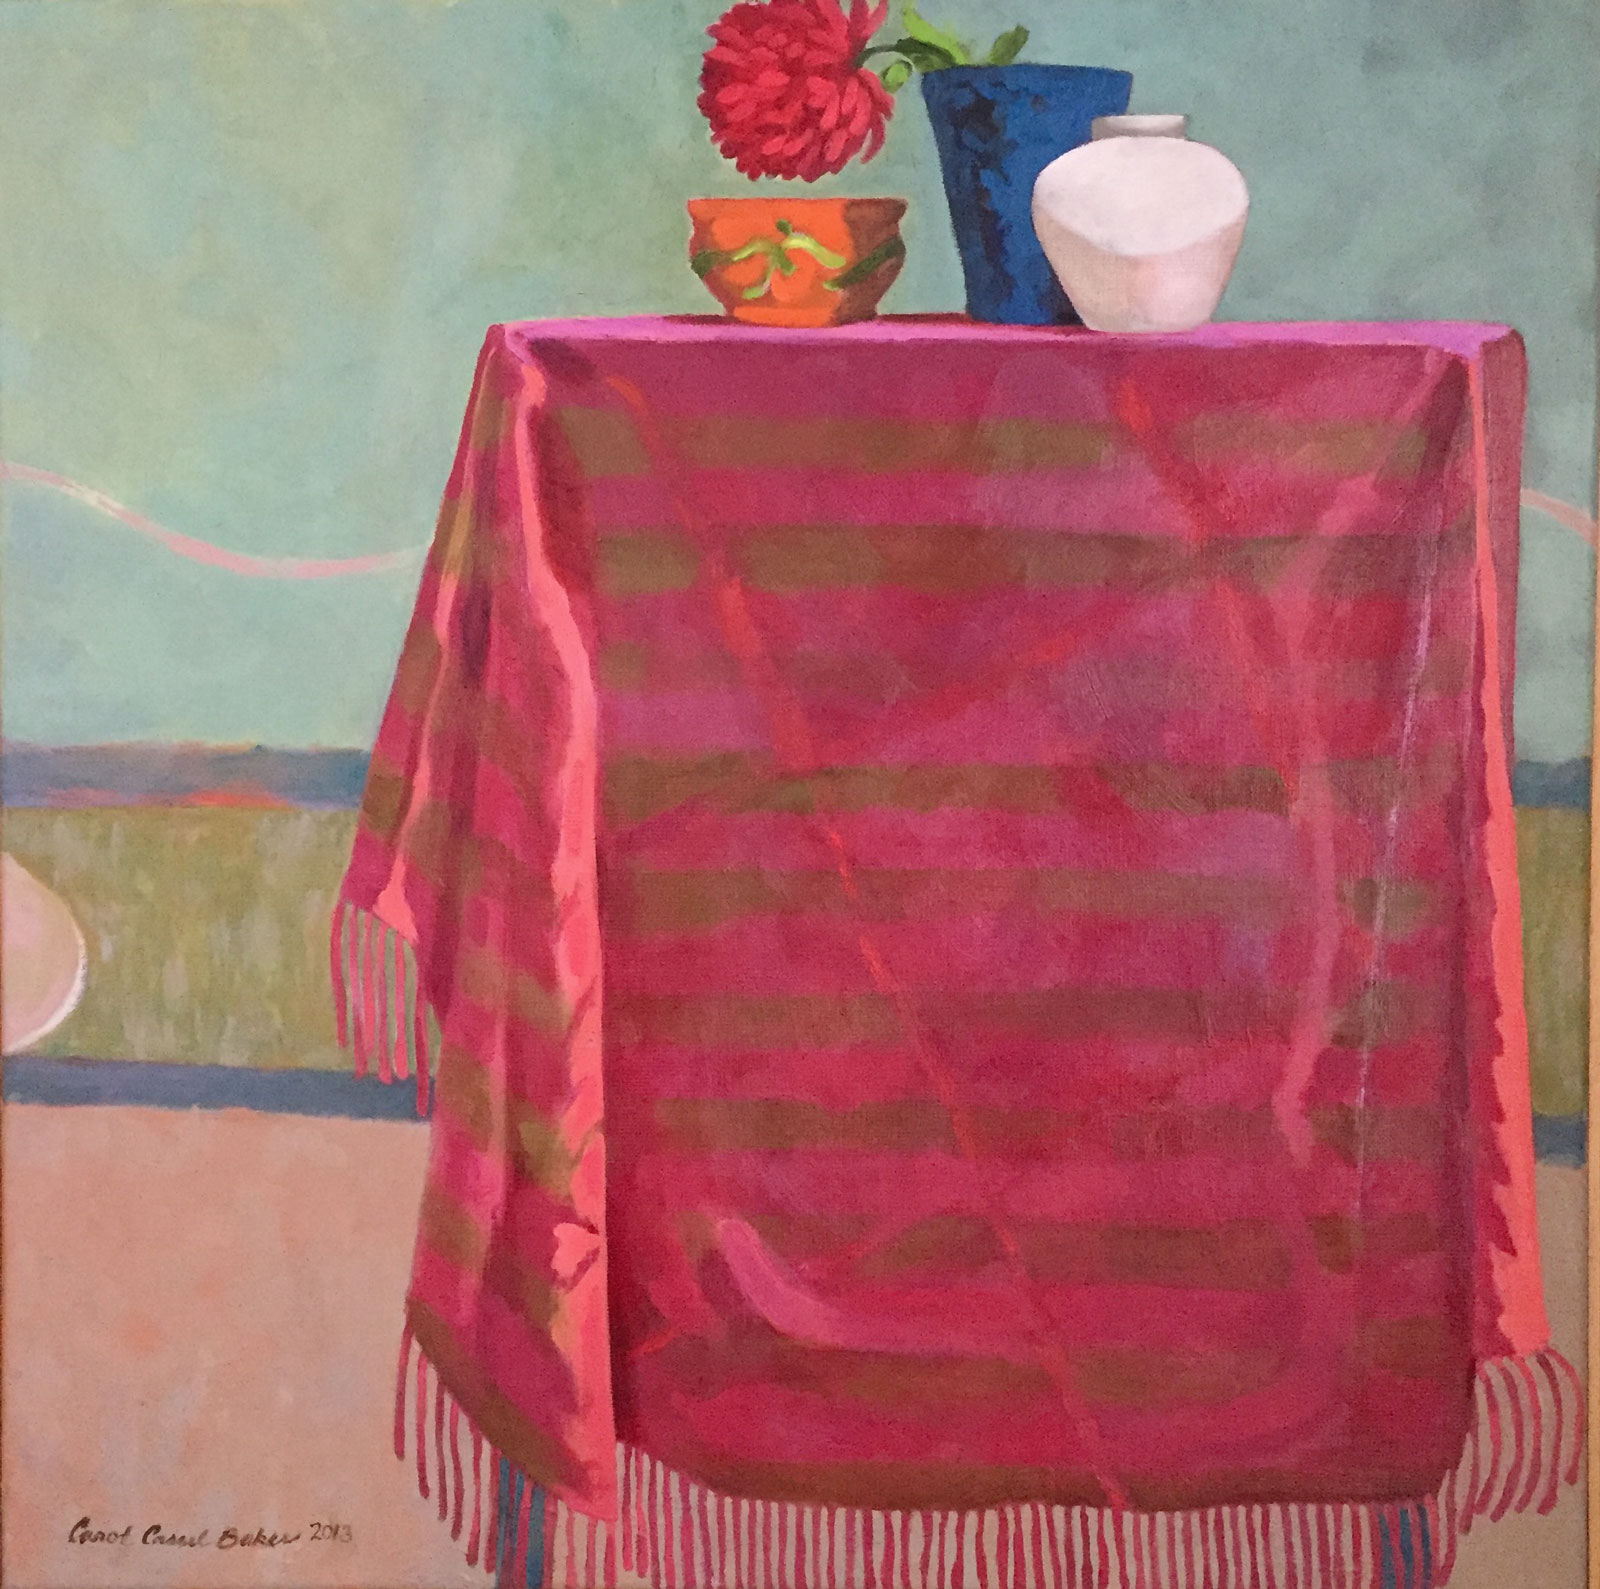 carol-cassel-baker_01-010_oil-painting_pink-tablecloth_2014_lowres.jpg